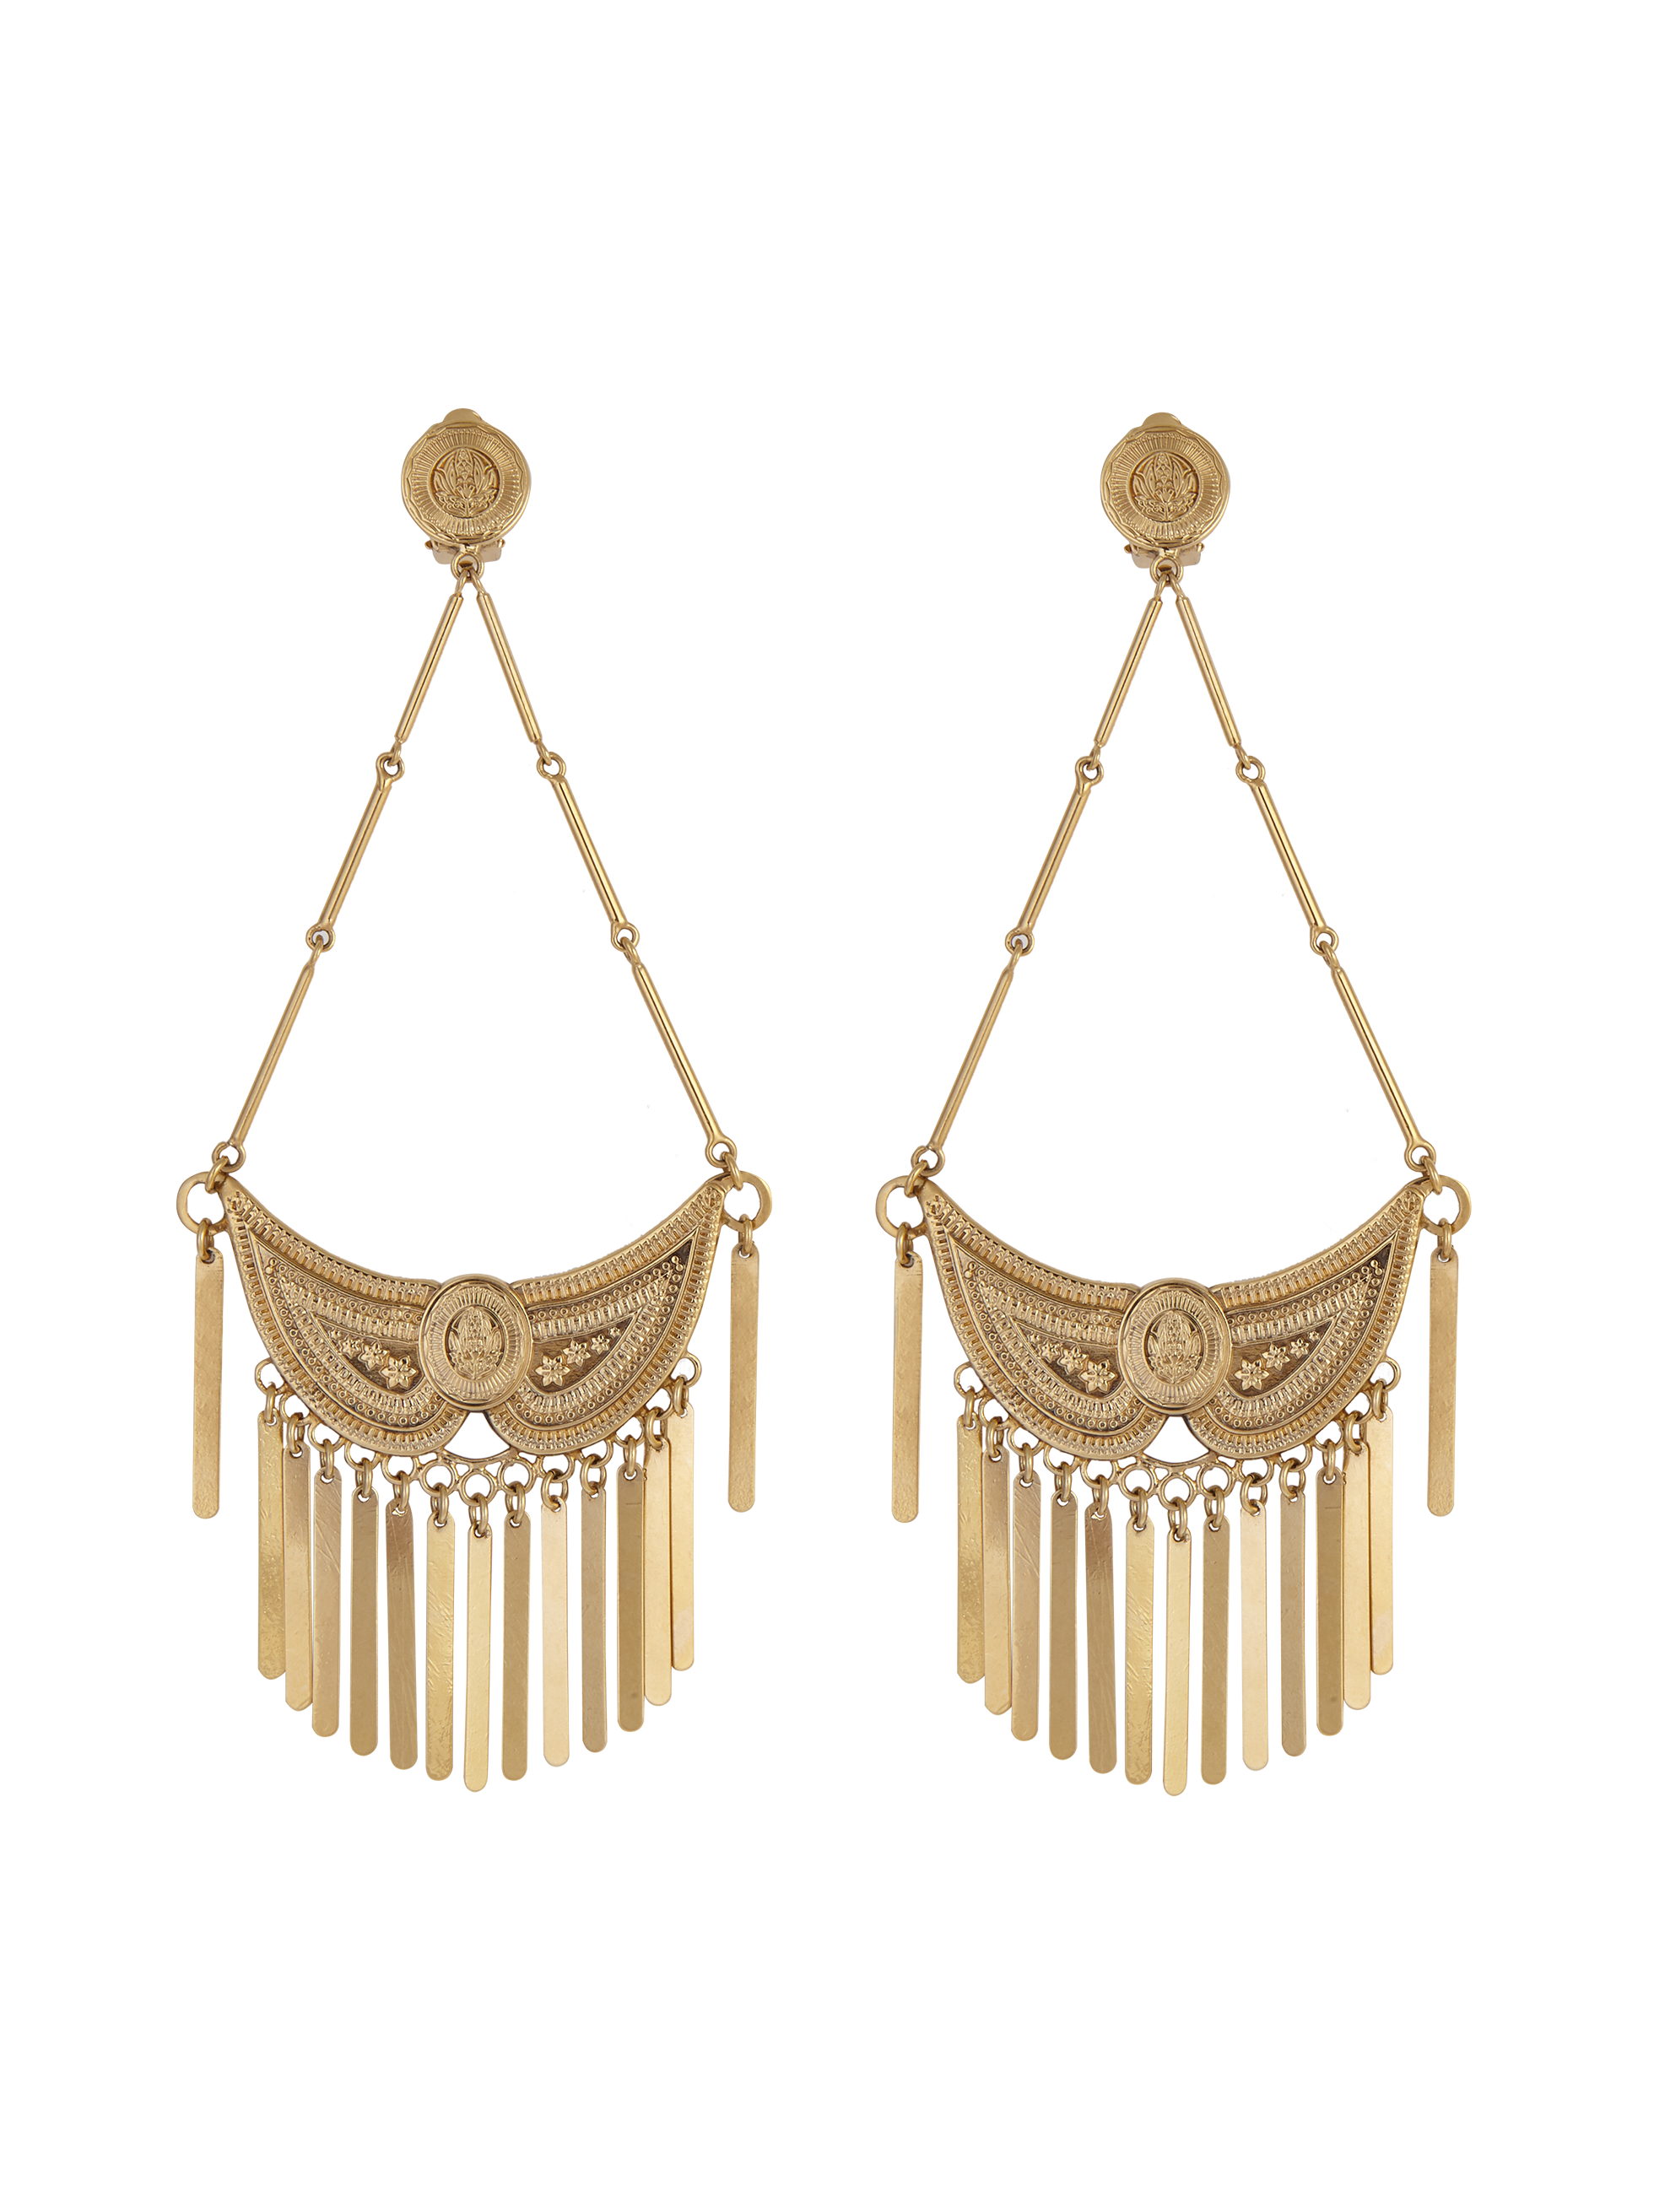 EARRINGS WITH METAL FRINGE